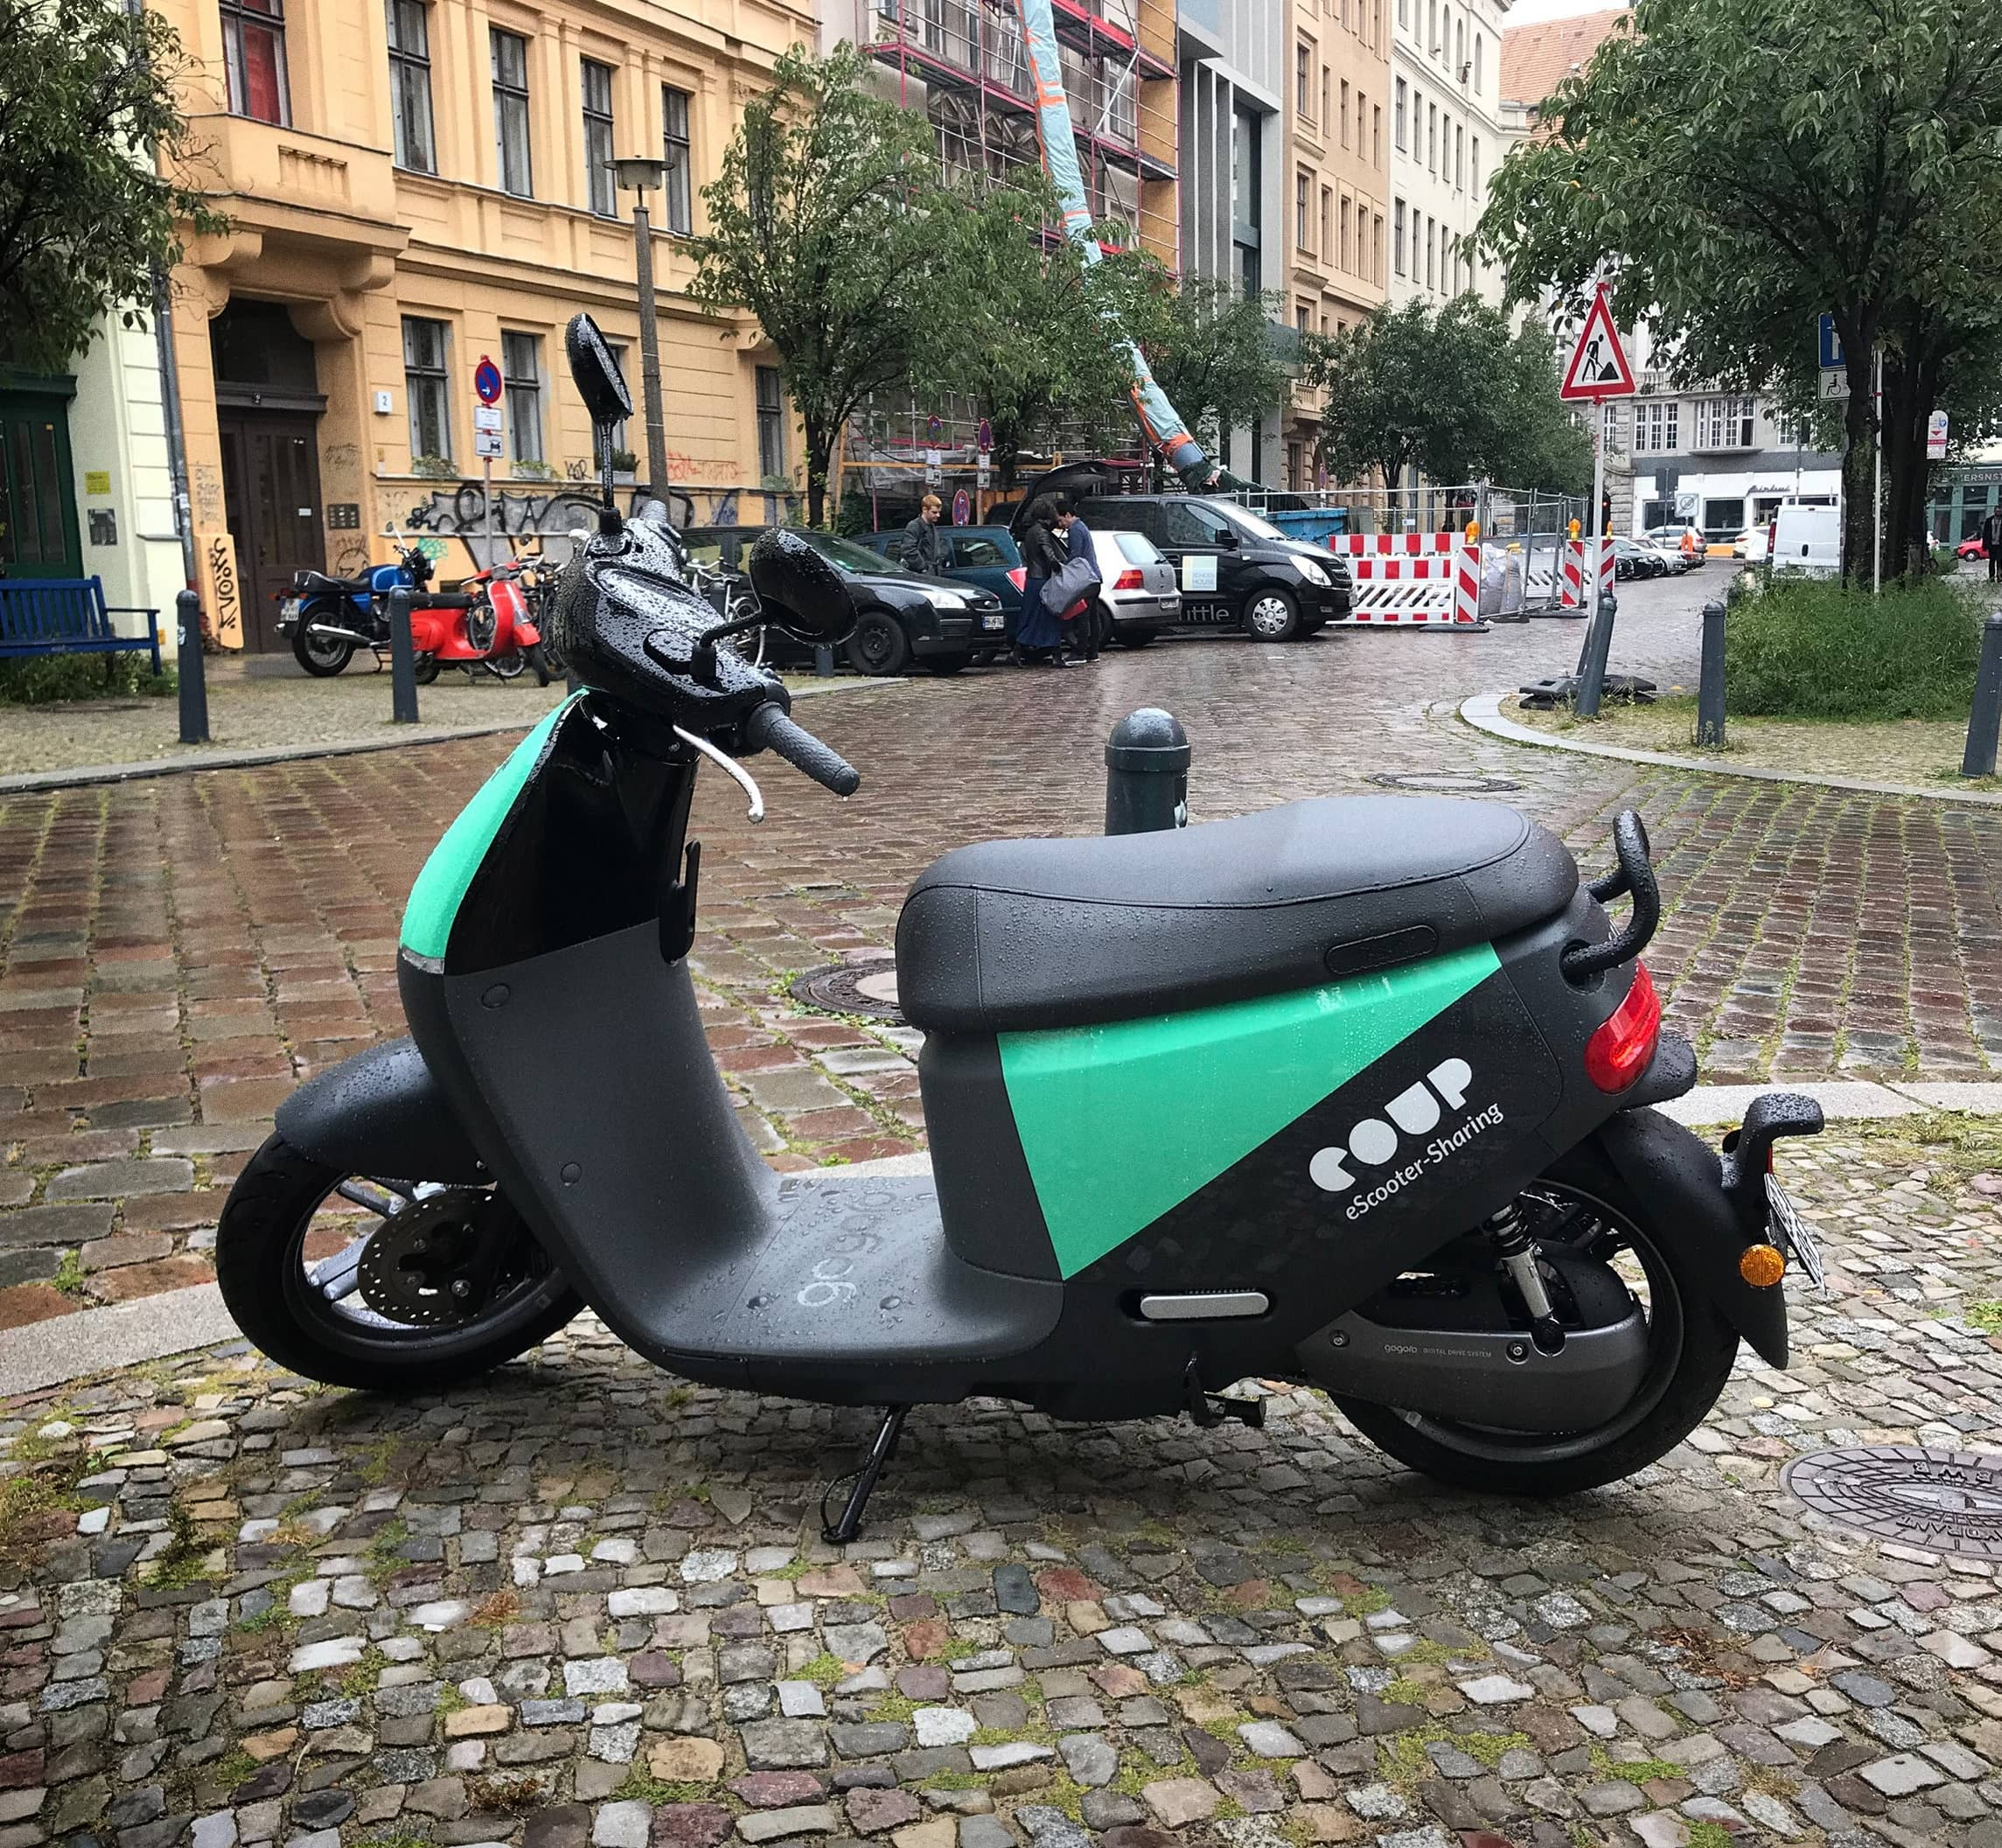 Bosch To Stop Motor Scooter-Sharing Service Coup In Europe